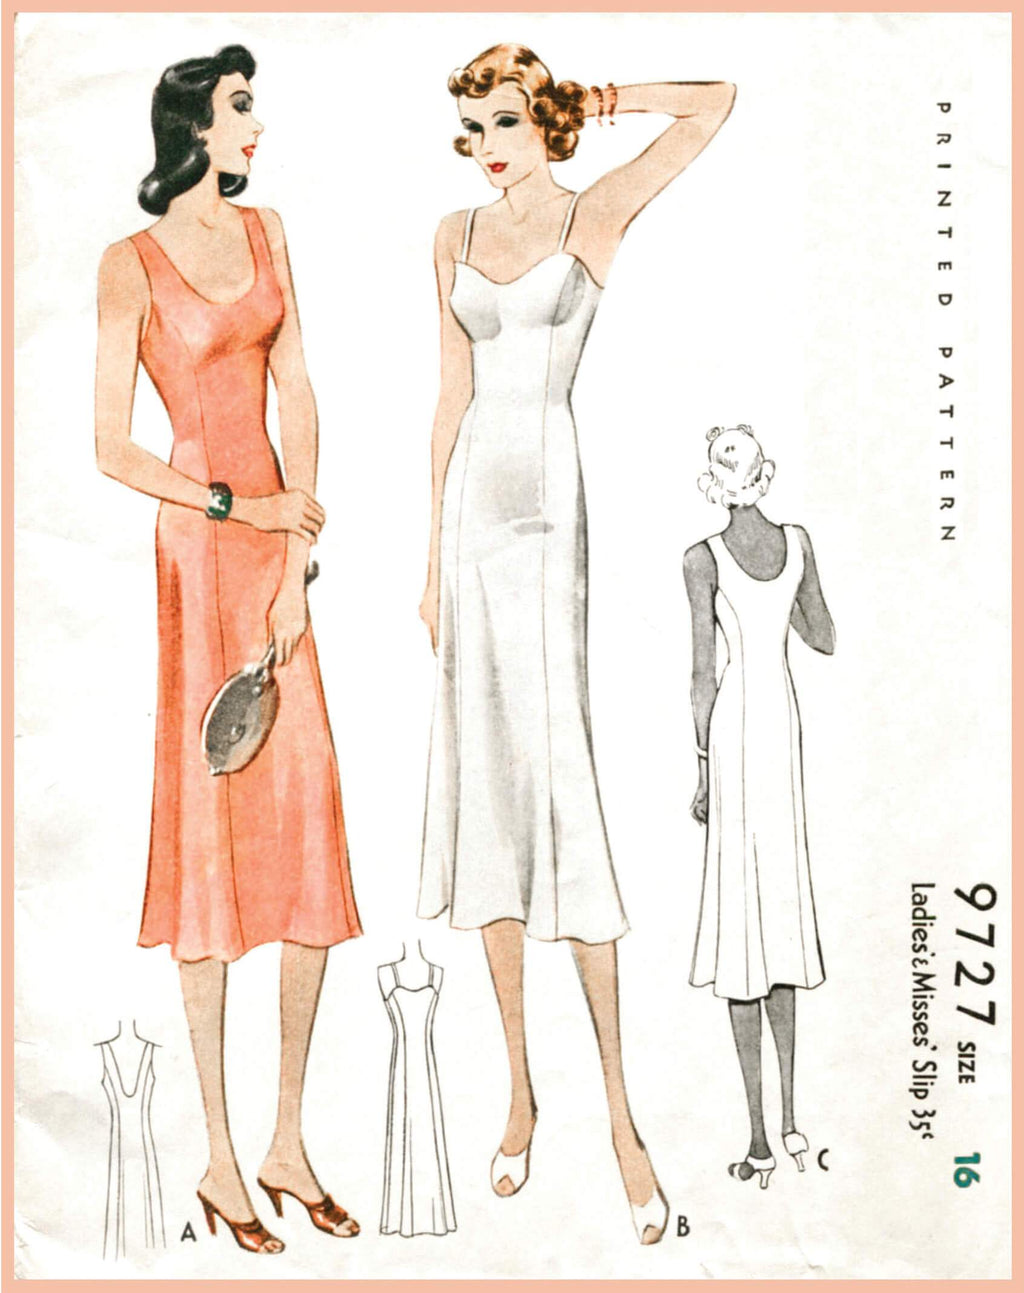 McCall 9727 1930s slip dress vintage sewing pattern 1930 30s lingerie